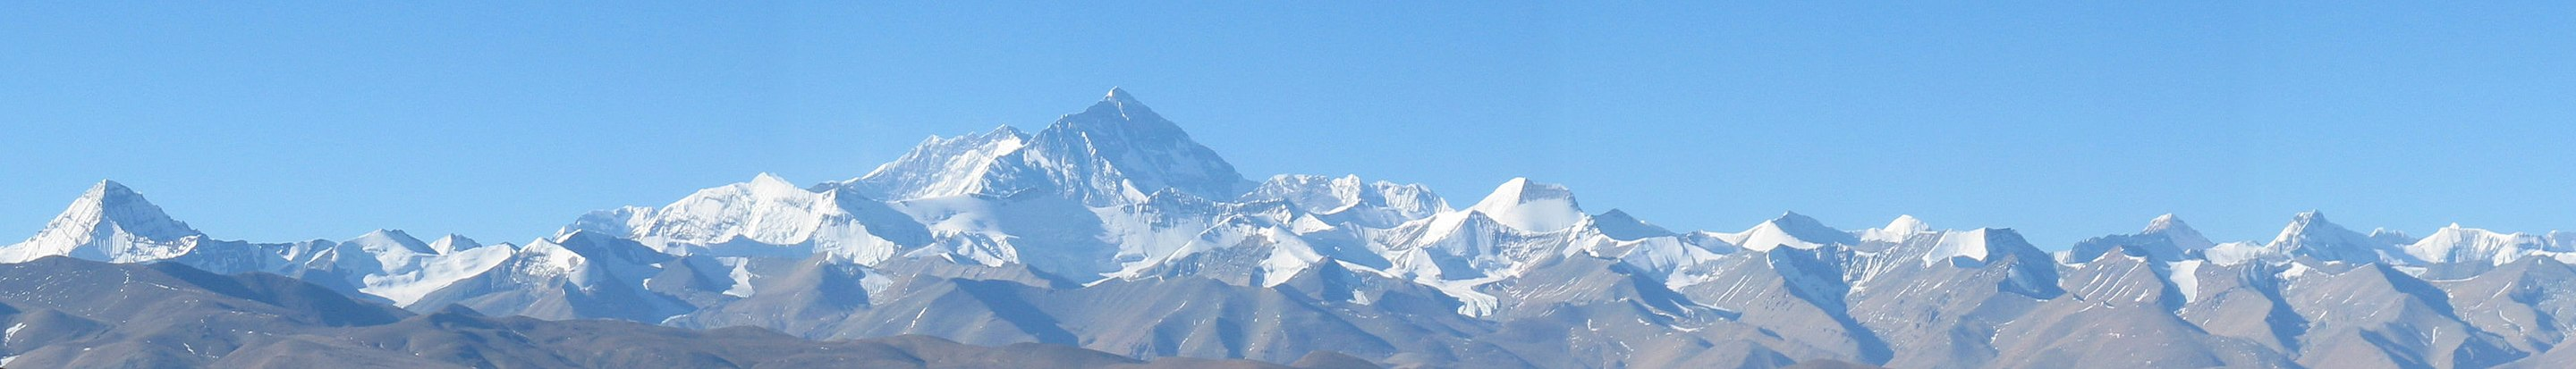 Foto Panoramic view of Mount Everest or Chomolungma from the north inside Tibet.